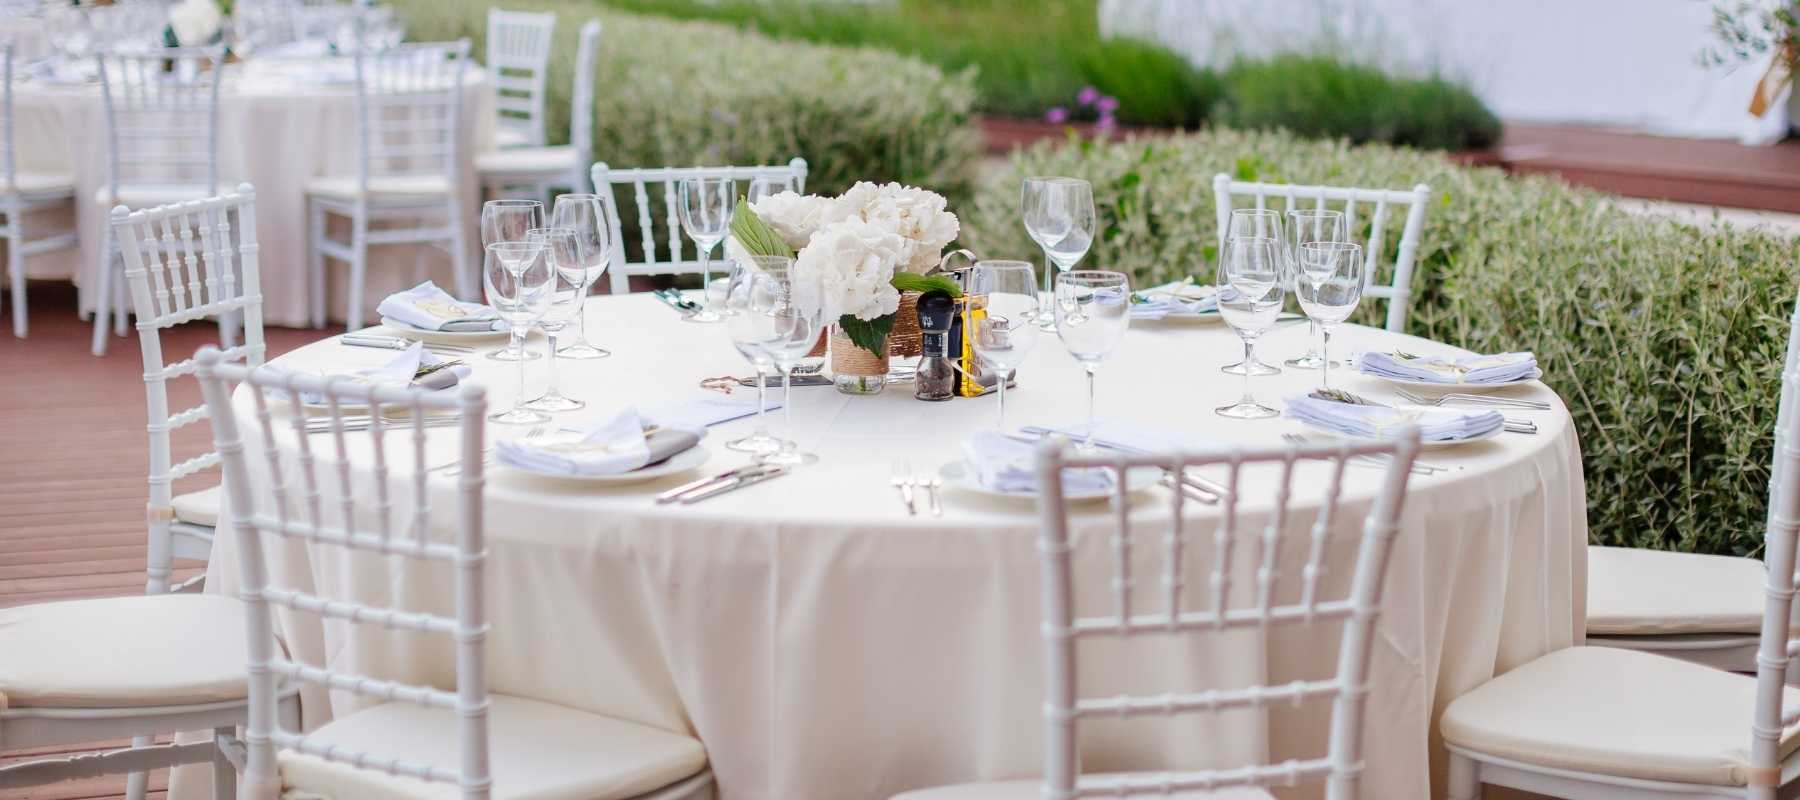 How to Choose a Wedding Venue - whats included